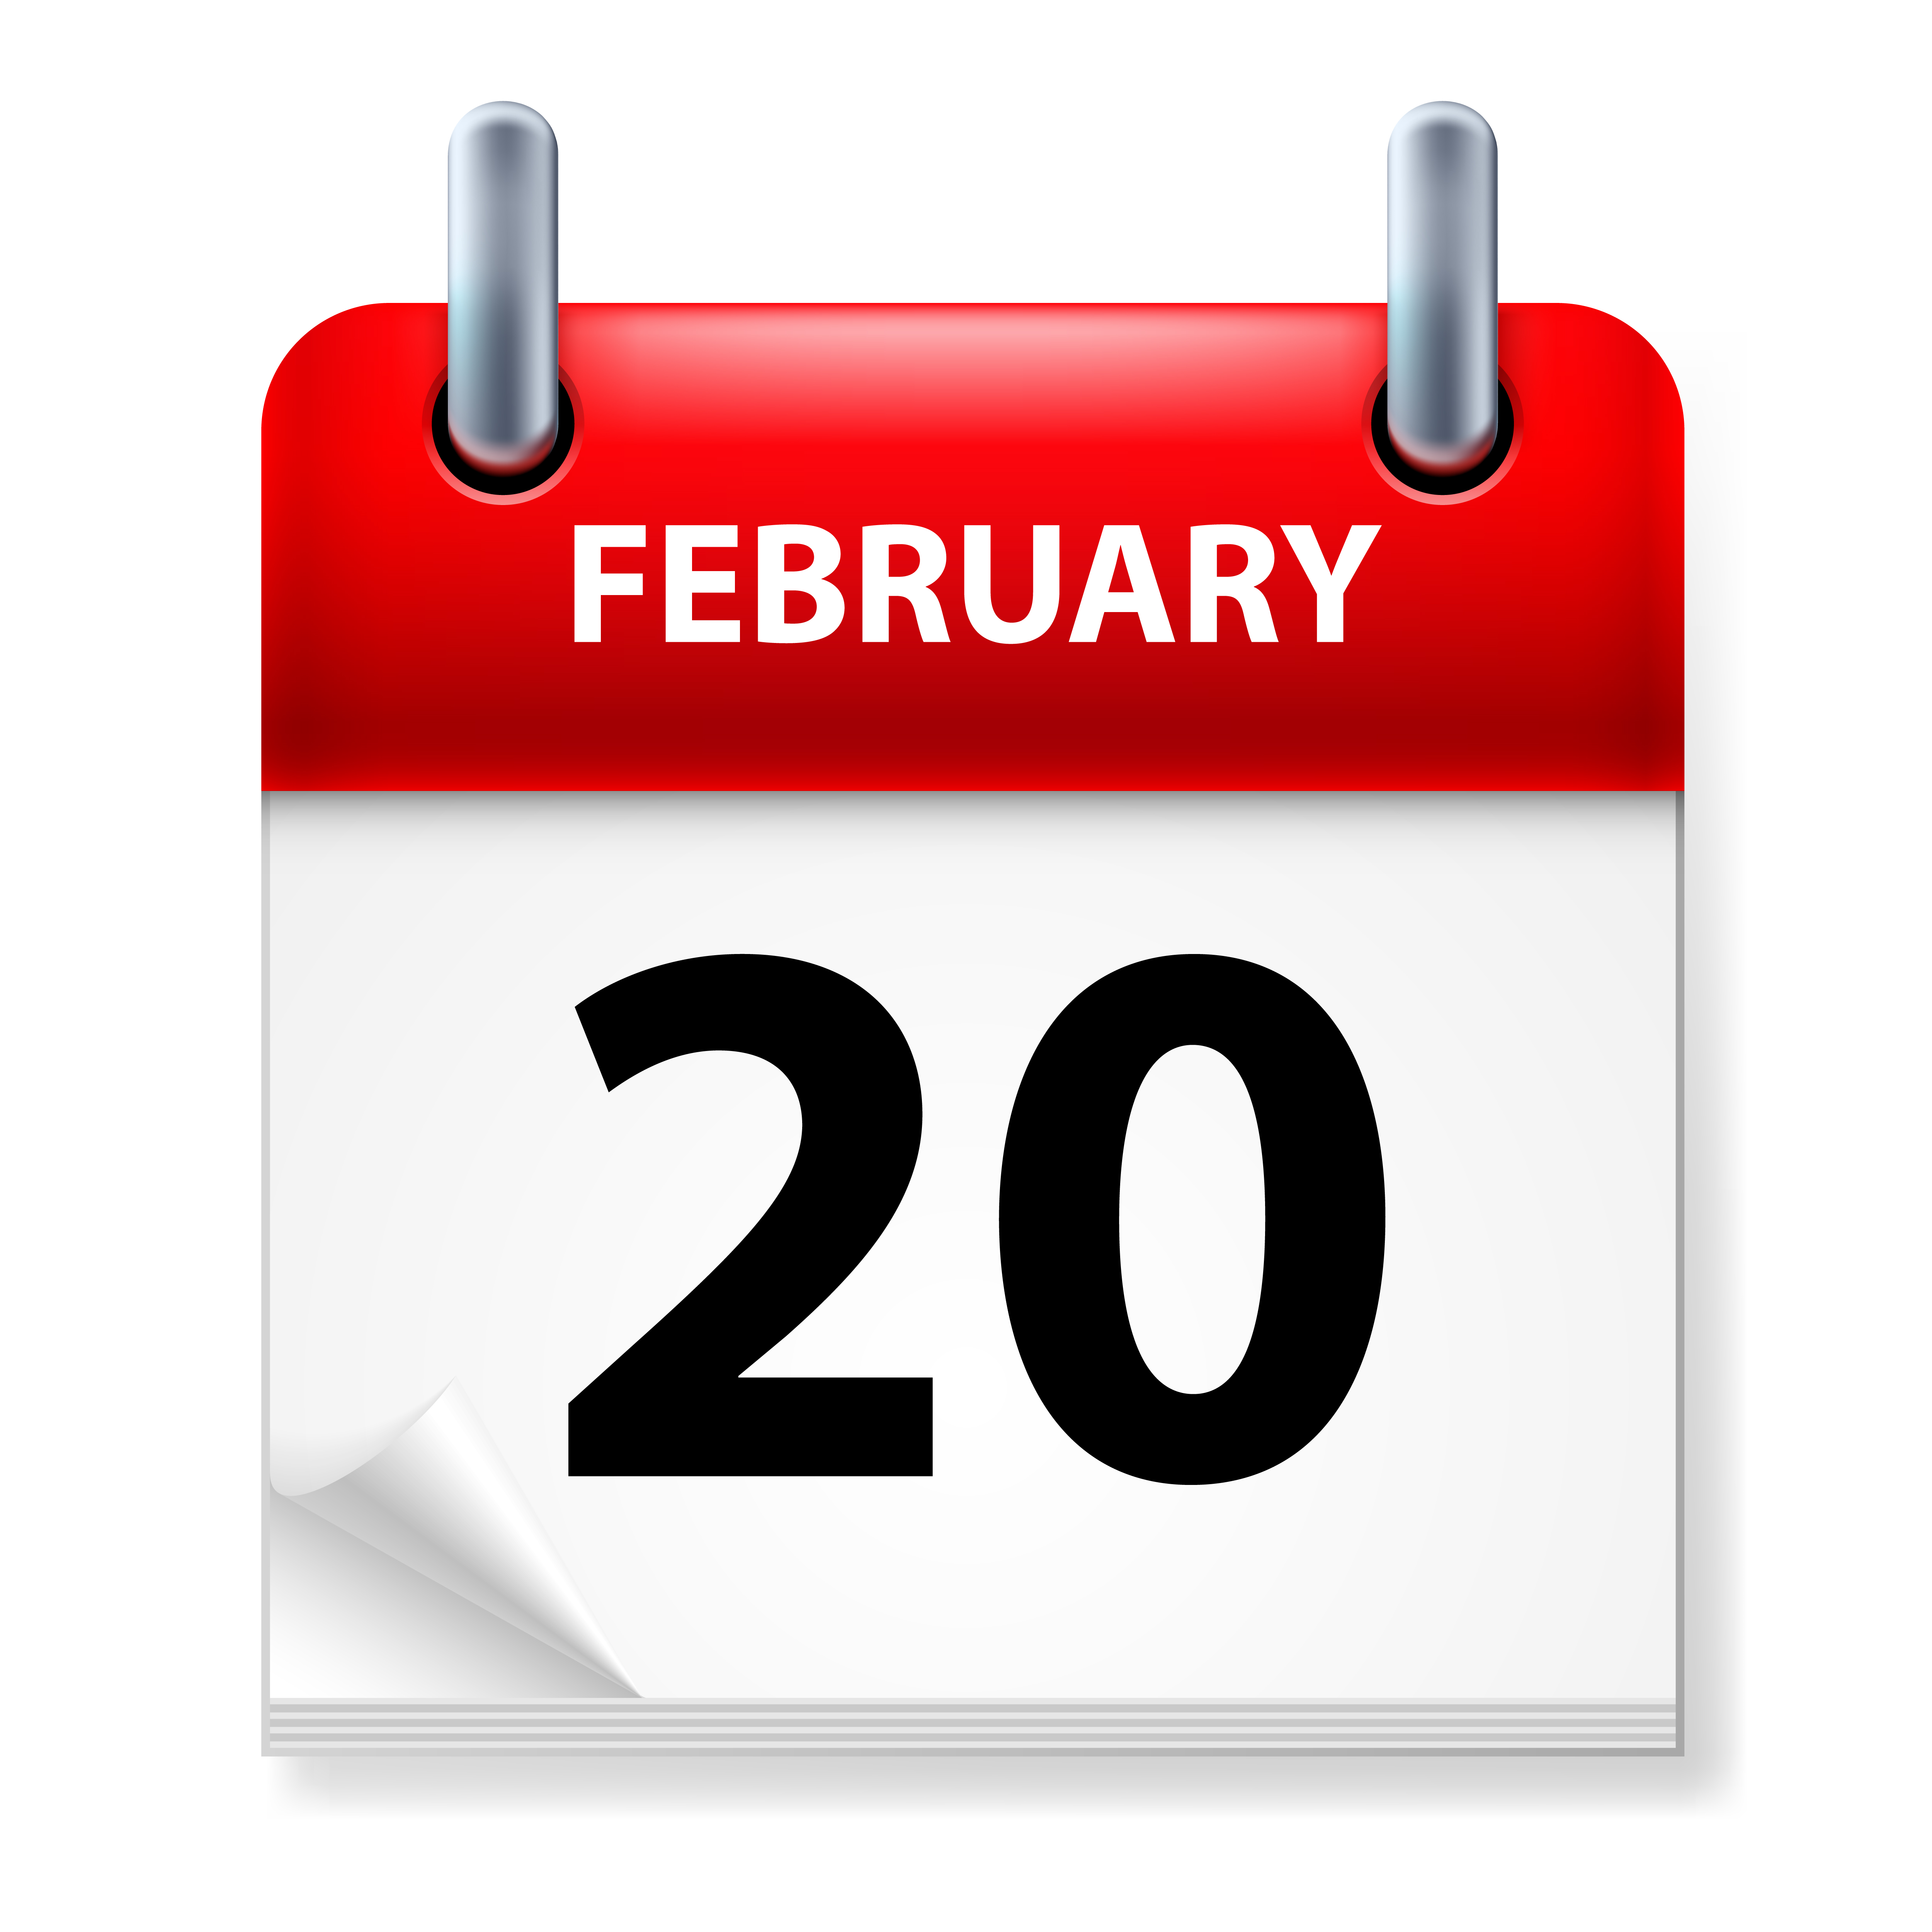 Feb 2018 clipart banner royalty free download Annual AGM 20th February 2018 at 8pm - Marley Grange Residents ... banner royalty free download